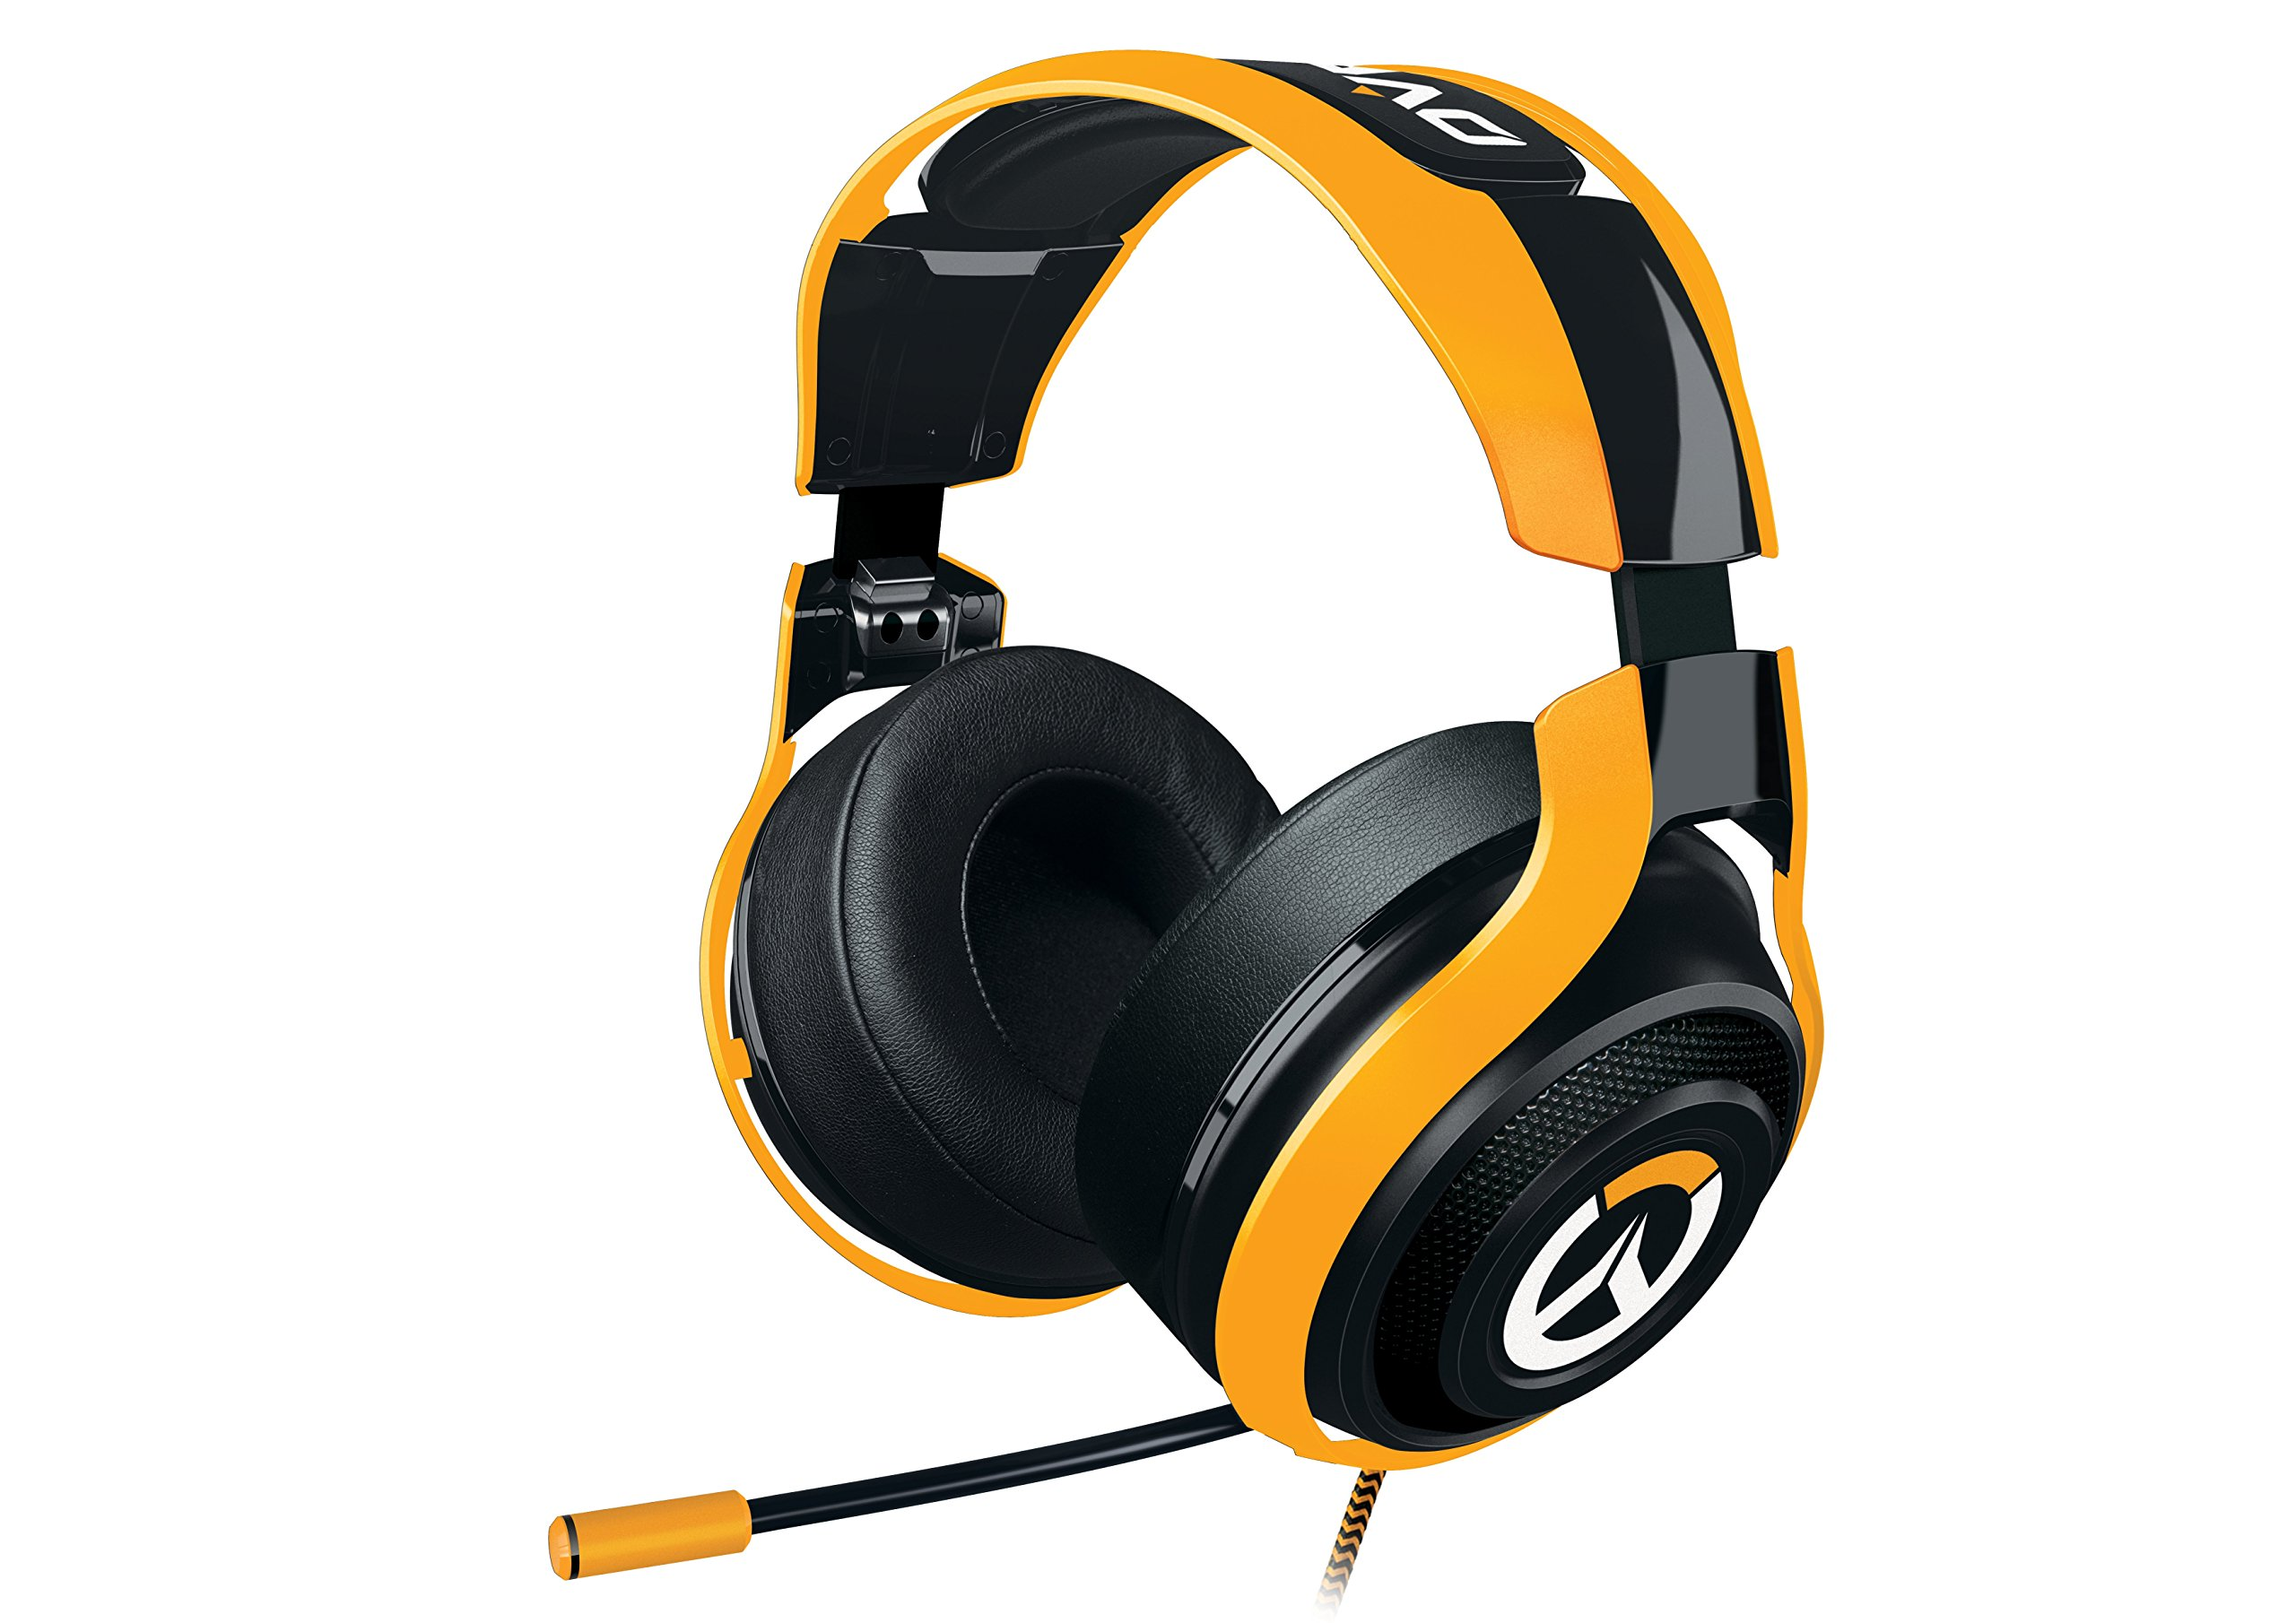 Razer Overwatch ManO'War Tournament Edition Gaming Headset - Compatible with PC, Xbox One, and Playstation 4 by Razer